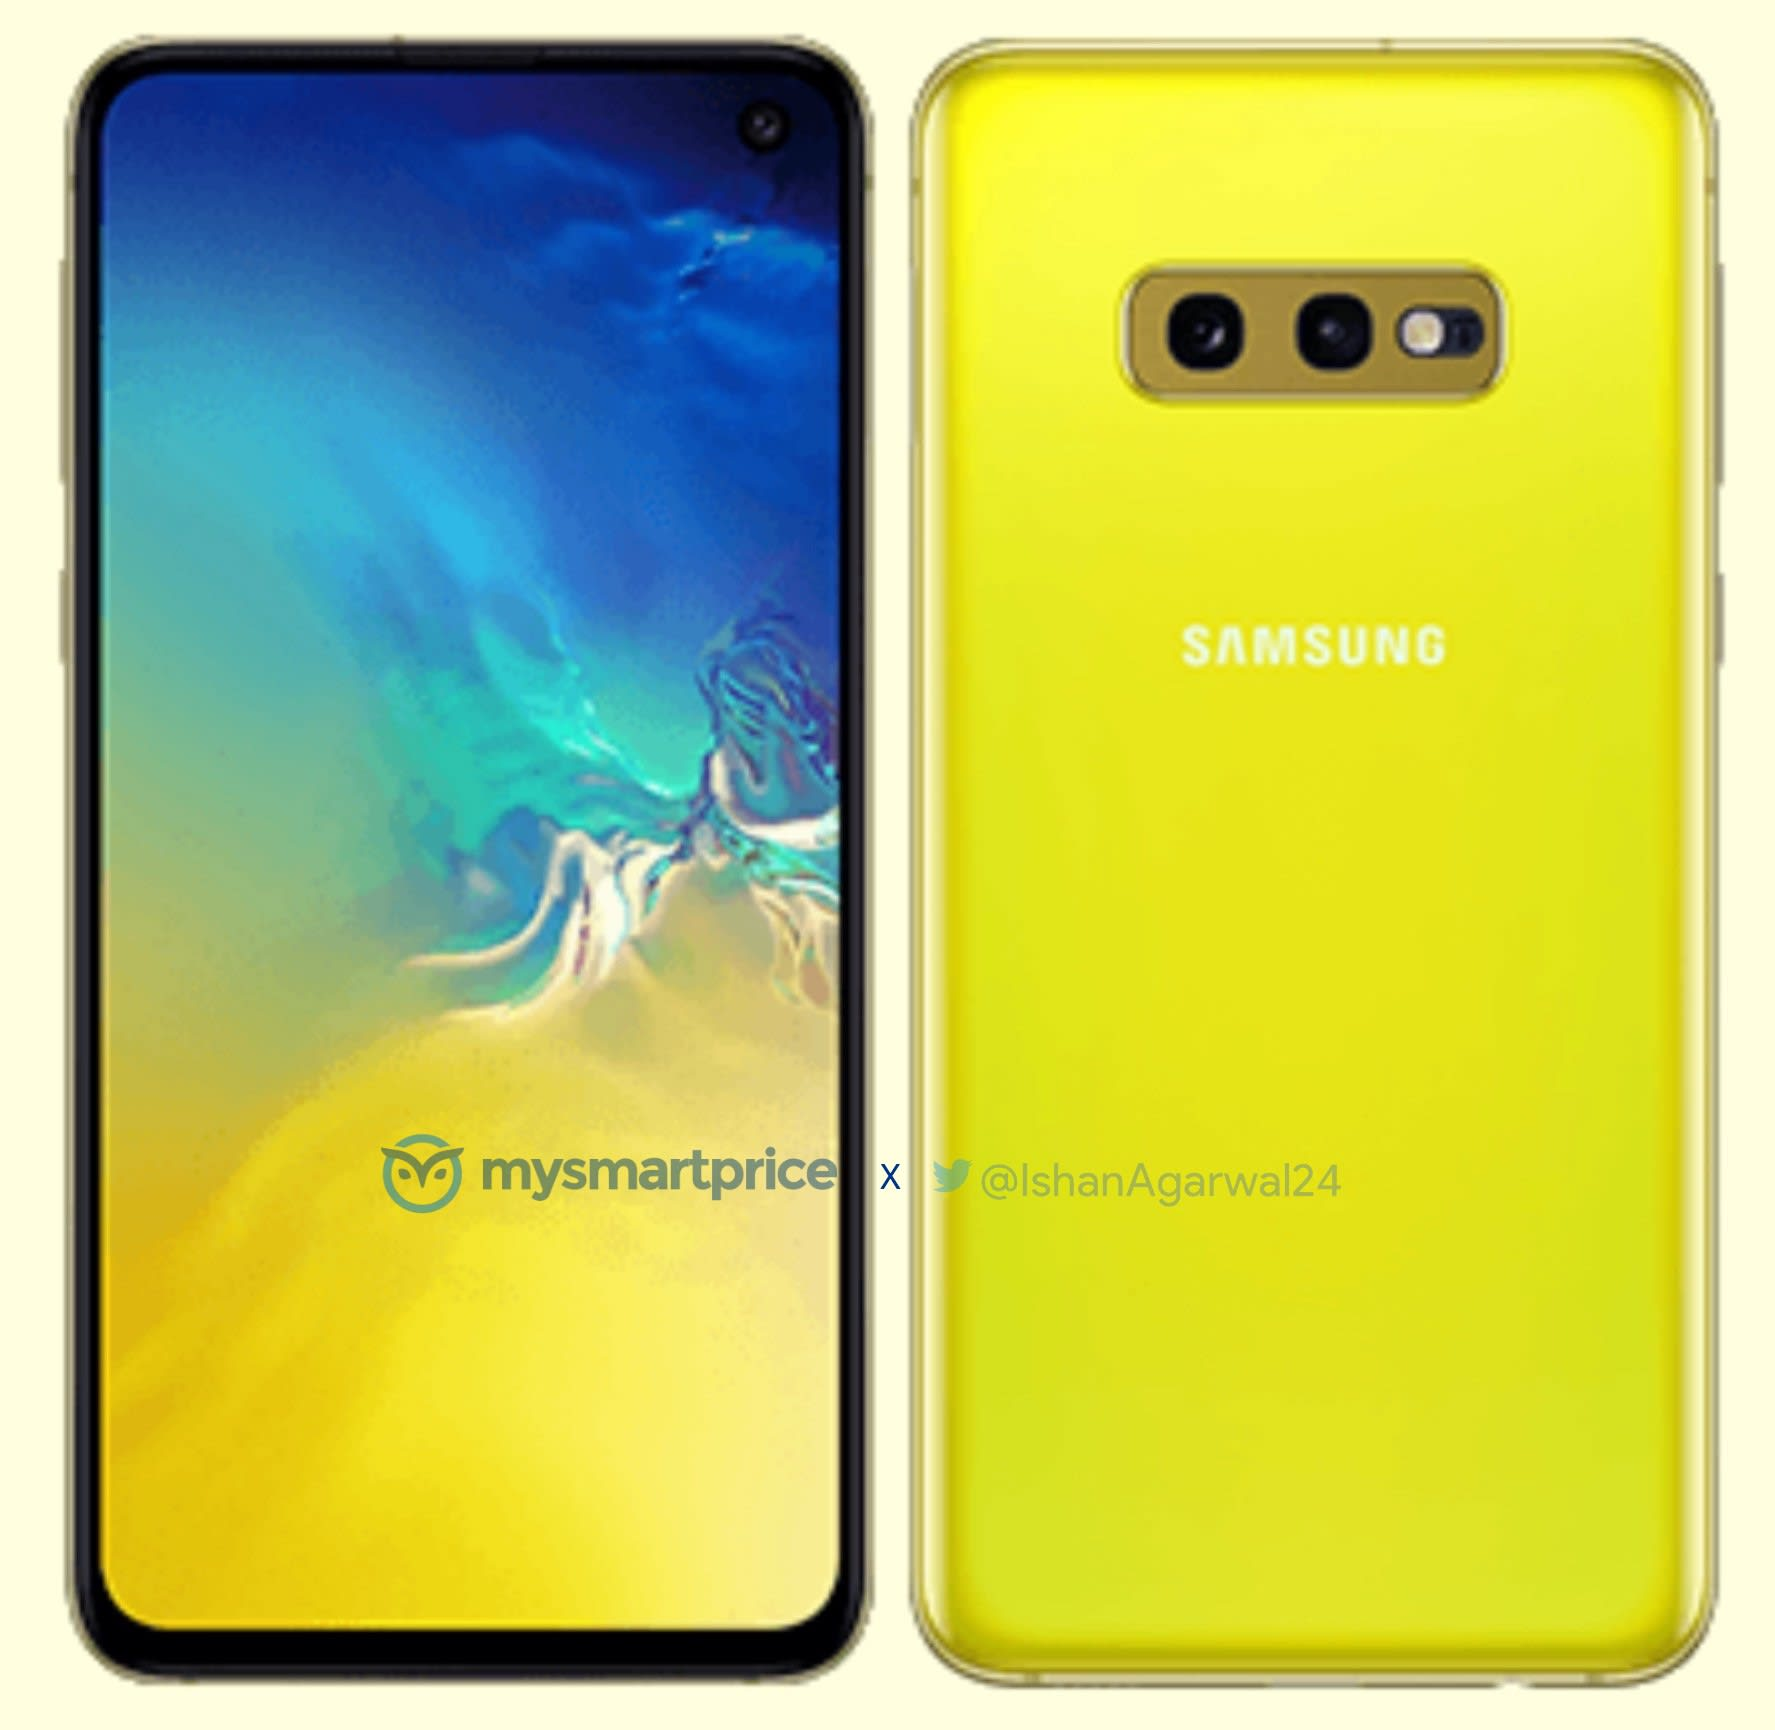 The Galaxy S10e will get a Canary Yellow color 1